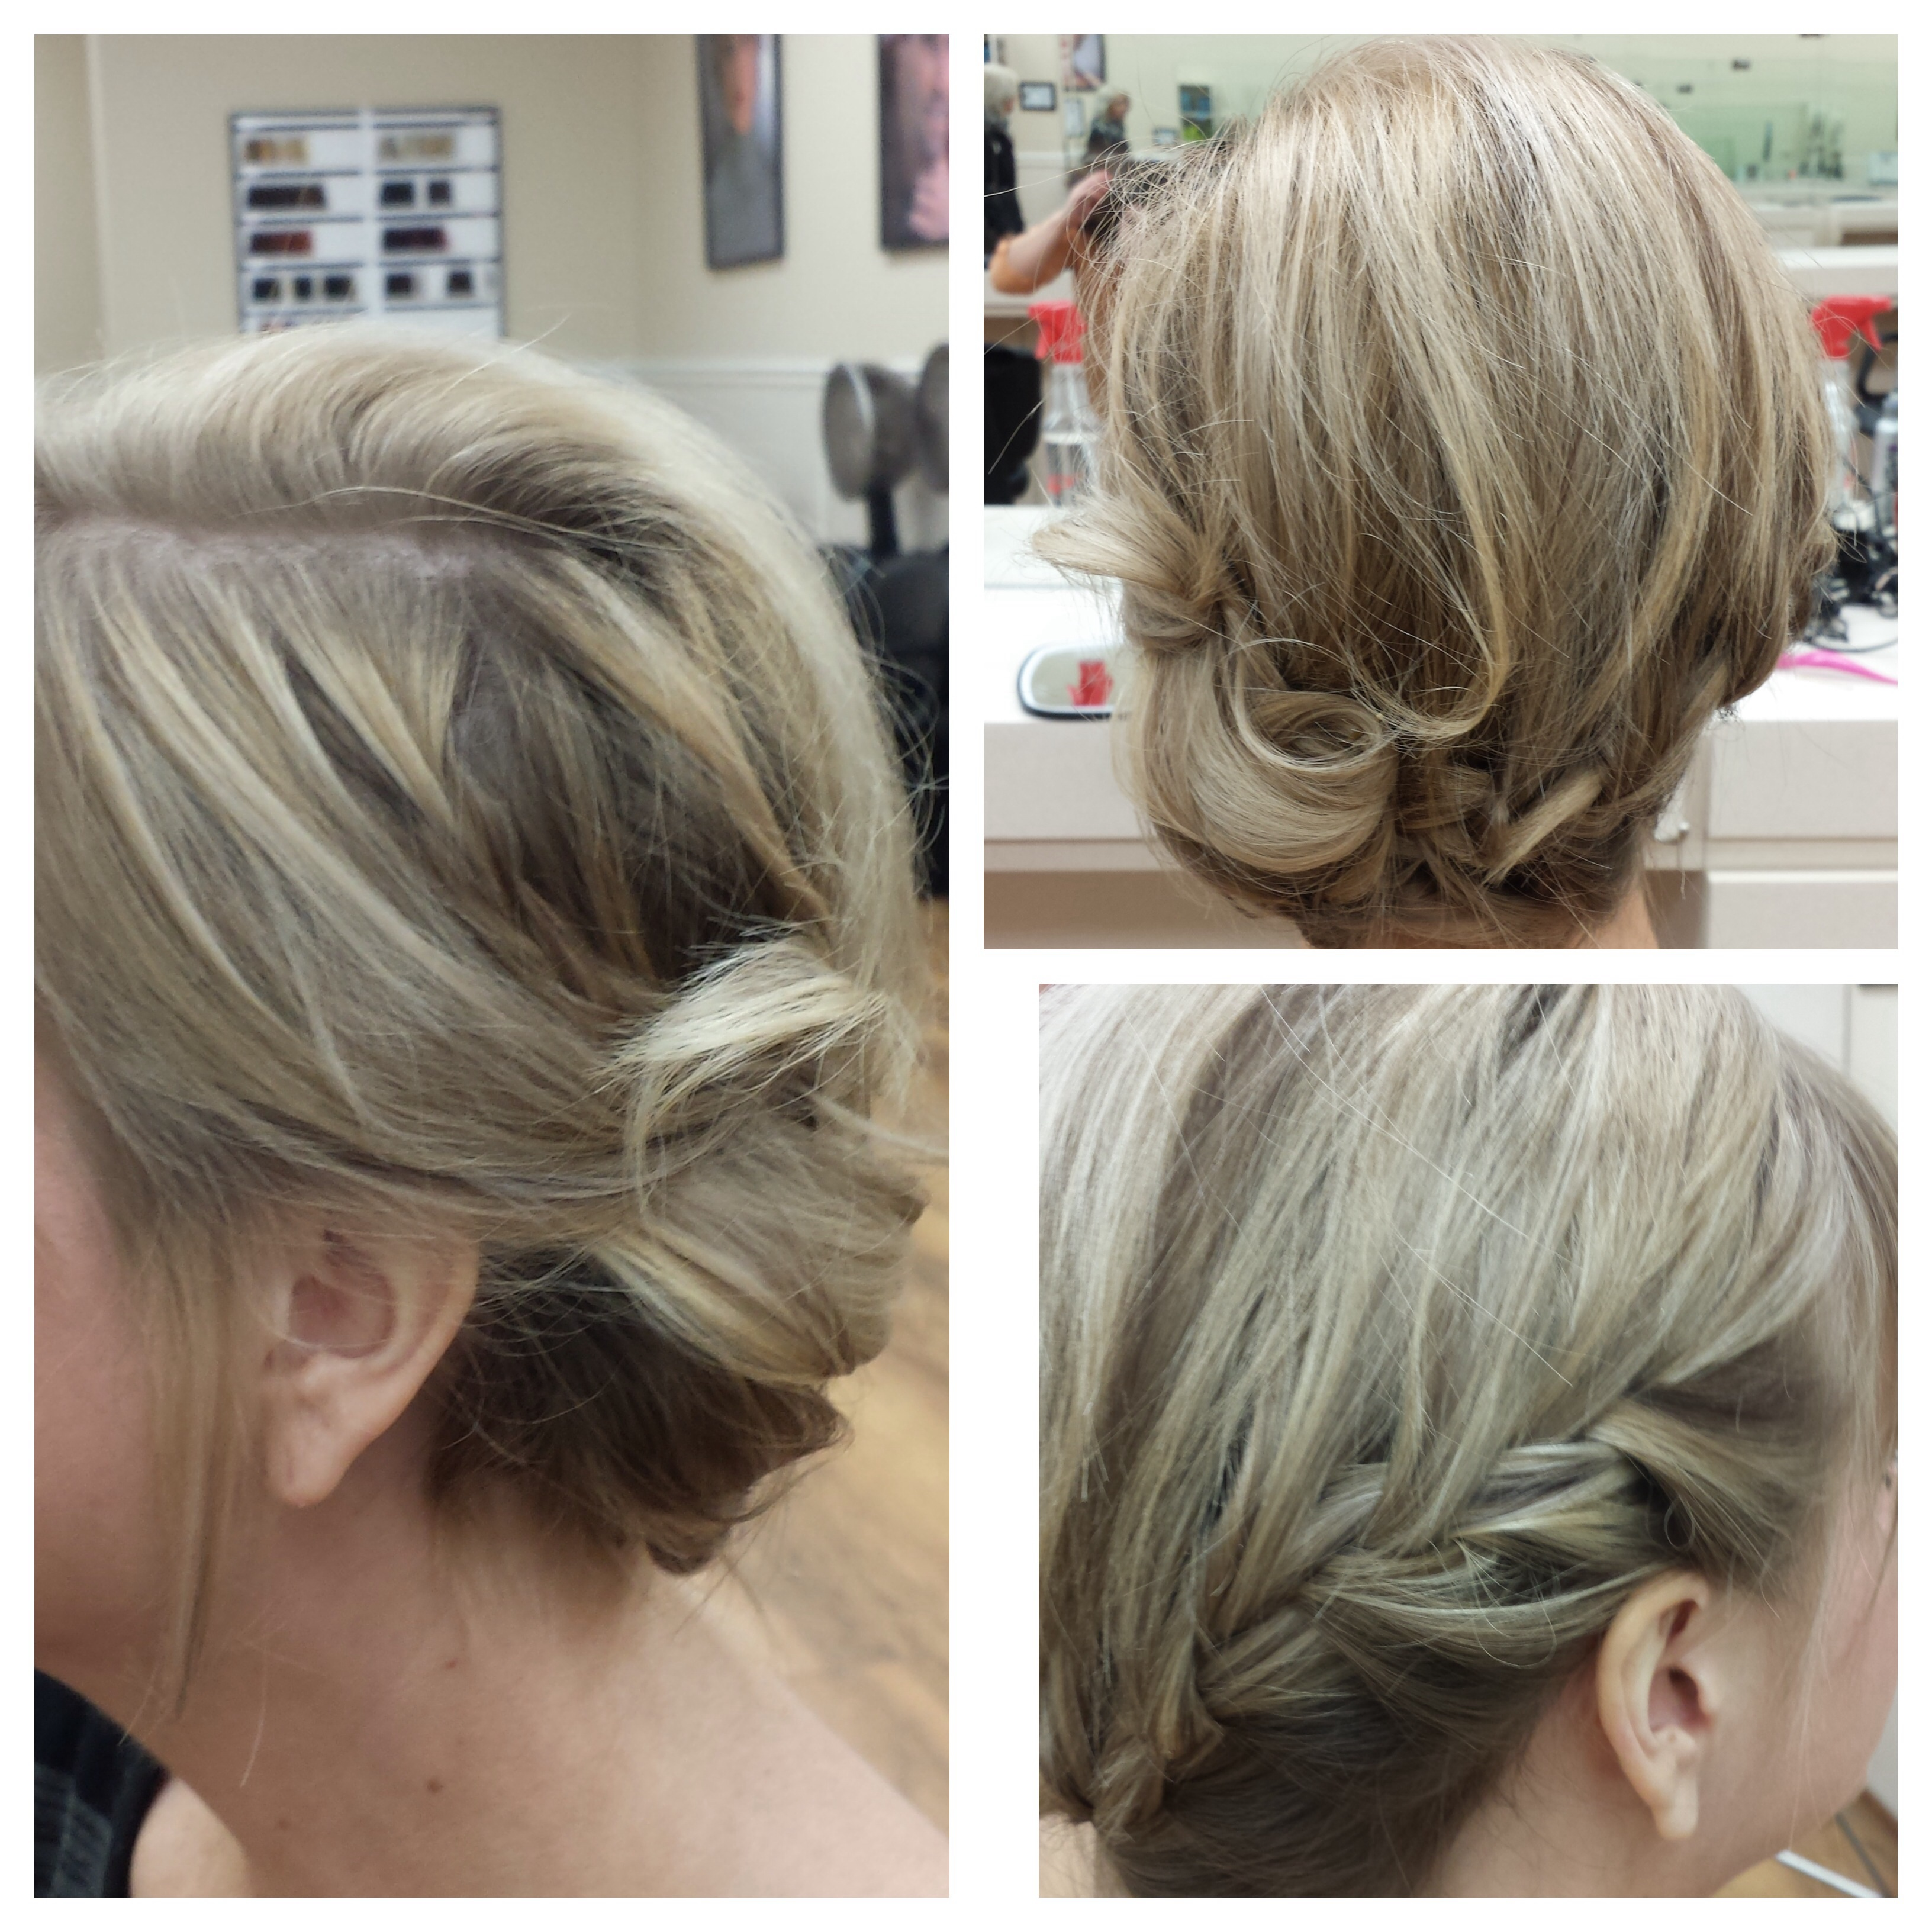 Ladies' Updos Tips & Men's Eyebrow Waxing